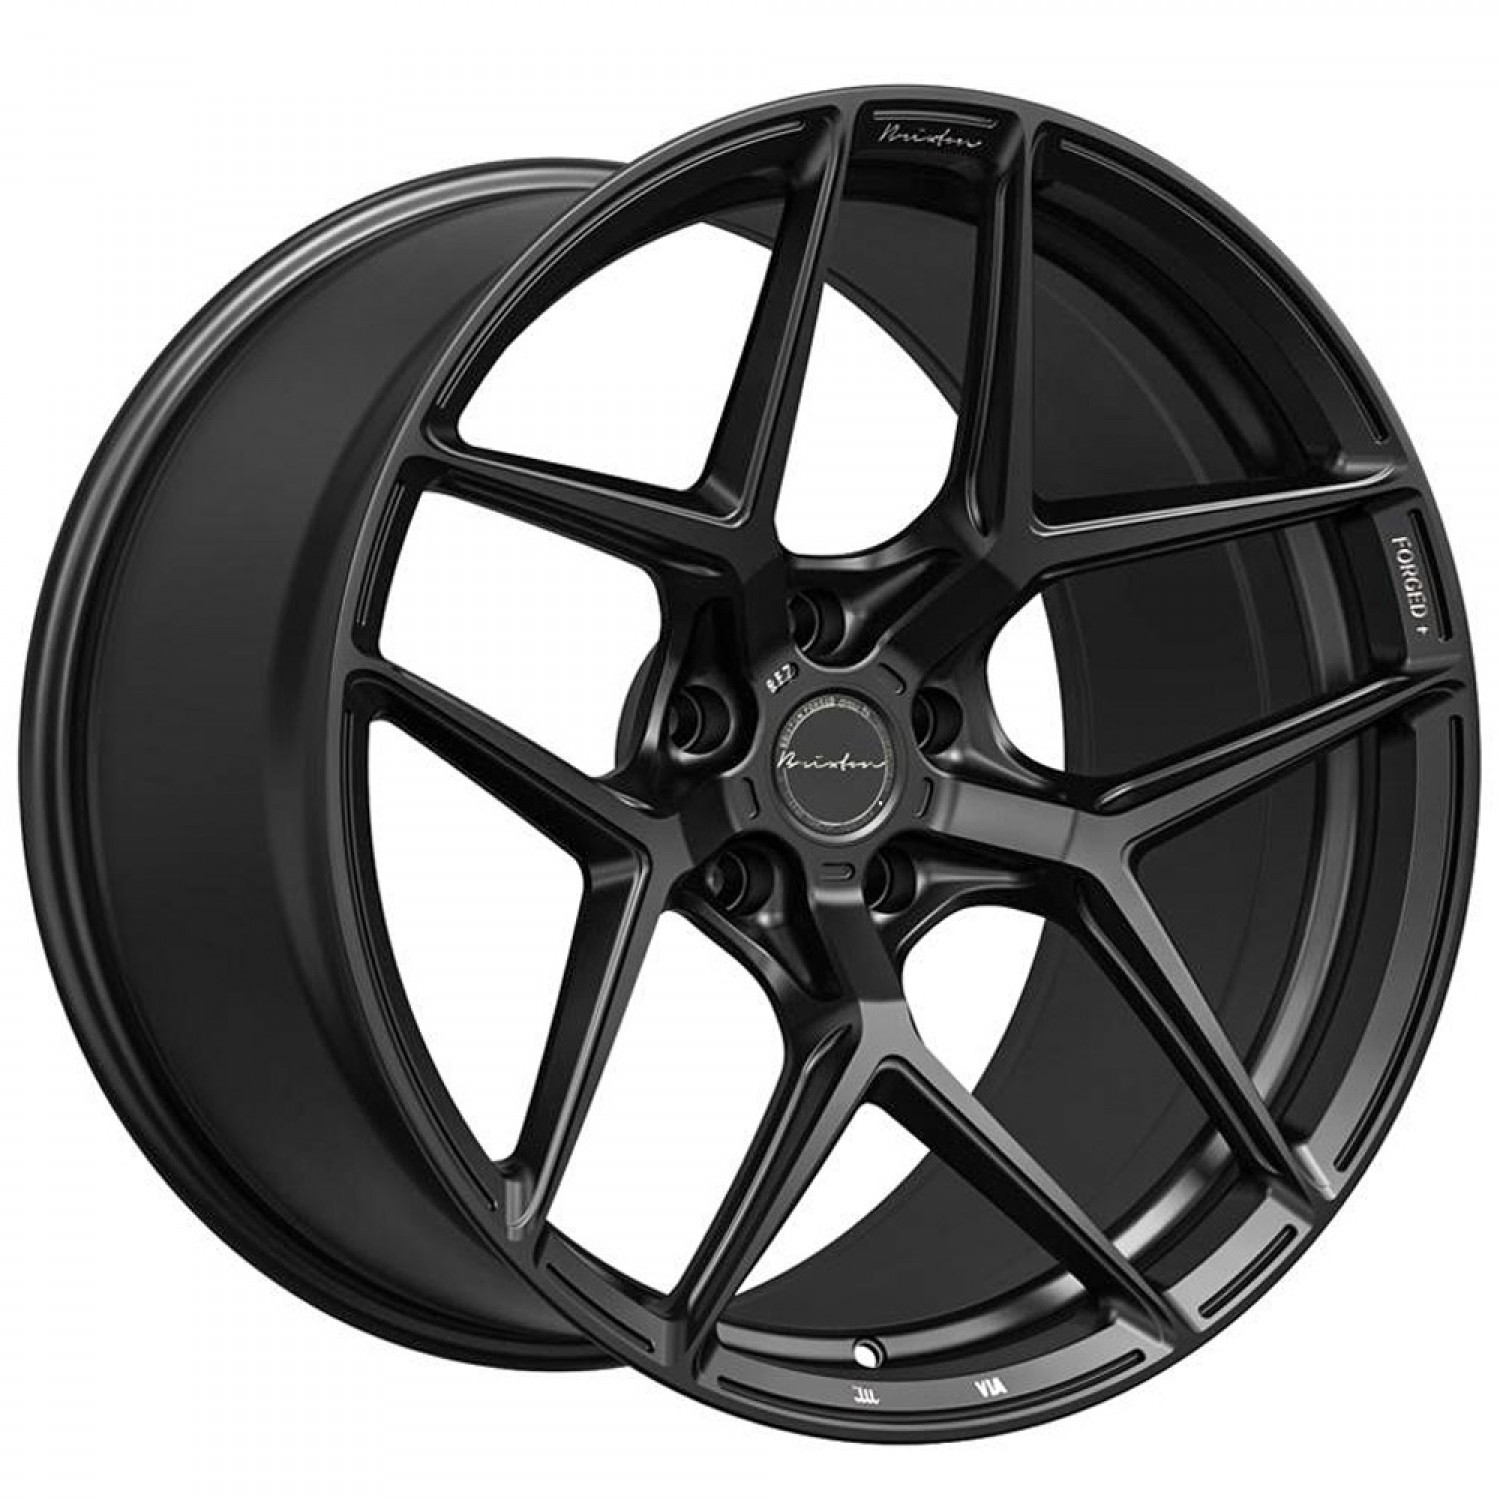 Brixton Forged RF7 for BMW M2 (F87) Wheels Rims Set vzn100171